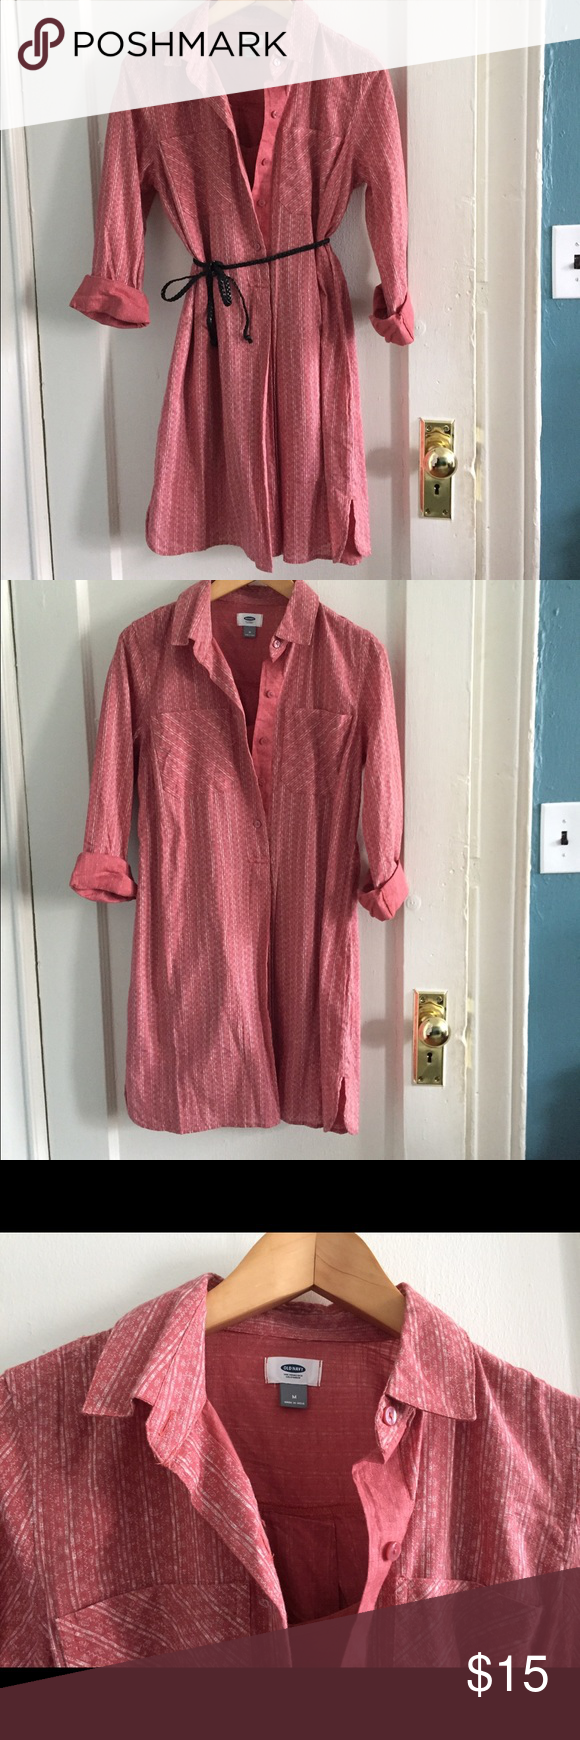 Old Navy Shirt Dress Never worn! Cute old navy red shirt dress. It comes with a pink liner underneath so you can wear it unbuttoned. Works as a dress with a cute belt (I will include the one in the picture of you want it), or can be worn as a tunic over legging. Perfect piece for fall.  ❤️Bundle any three items and save 20%❤️ Old Navy Dresses